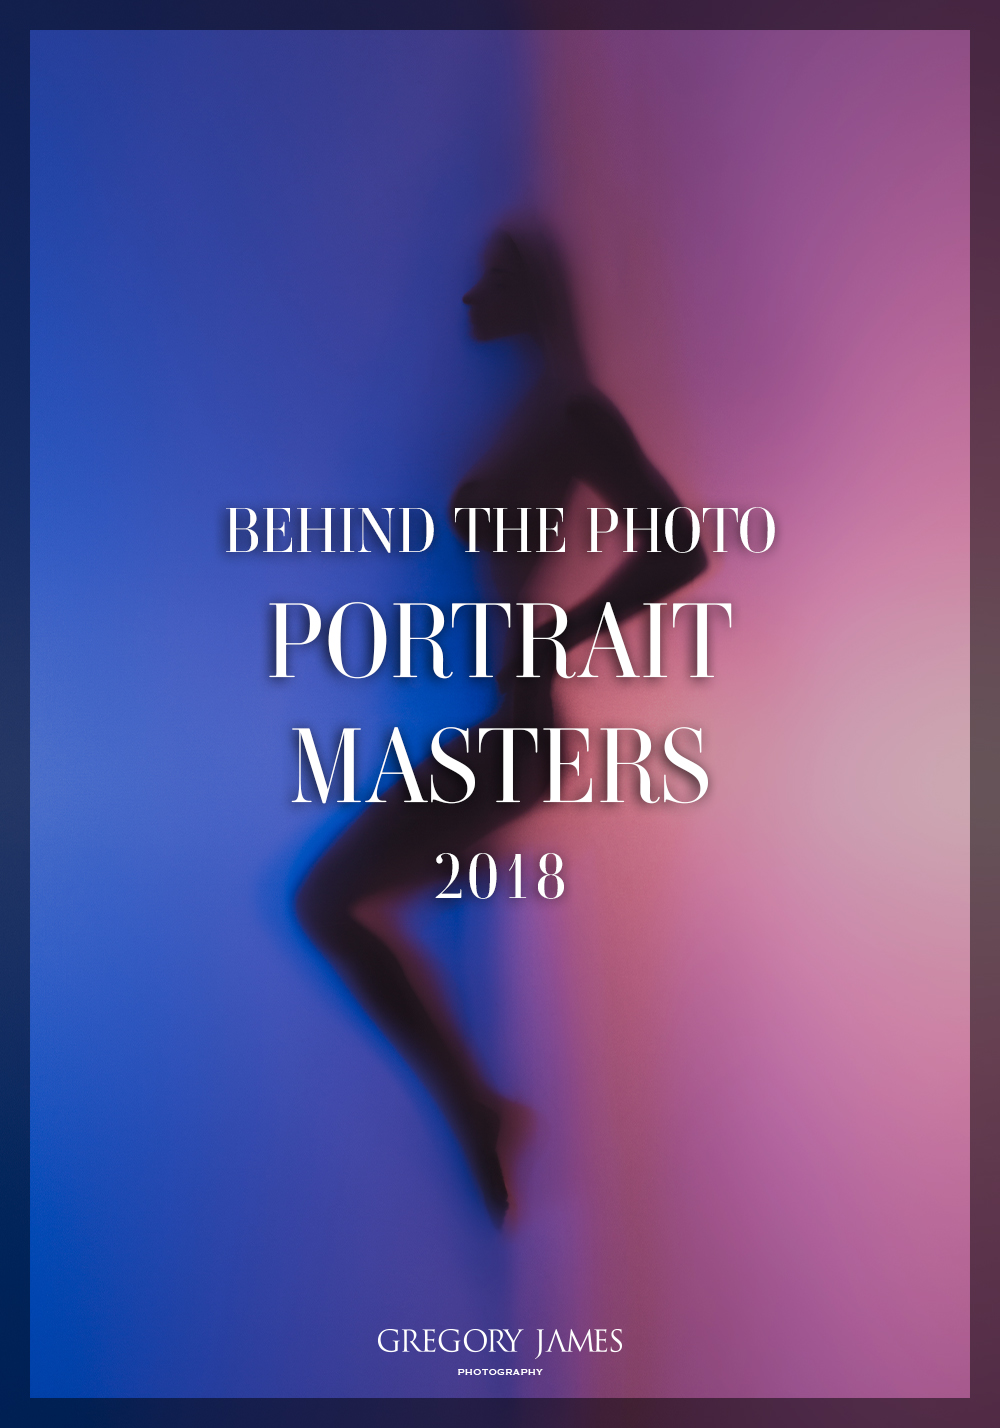 behind-the-photo-portrait-masters-2018.jpg